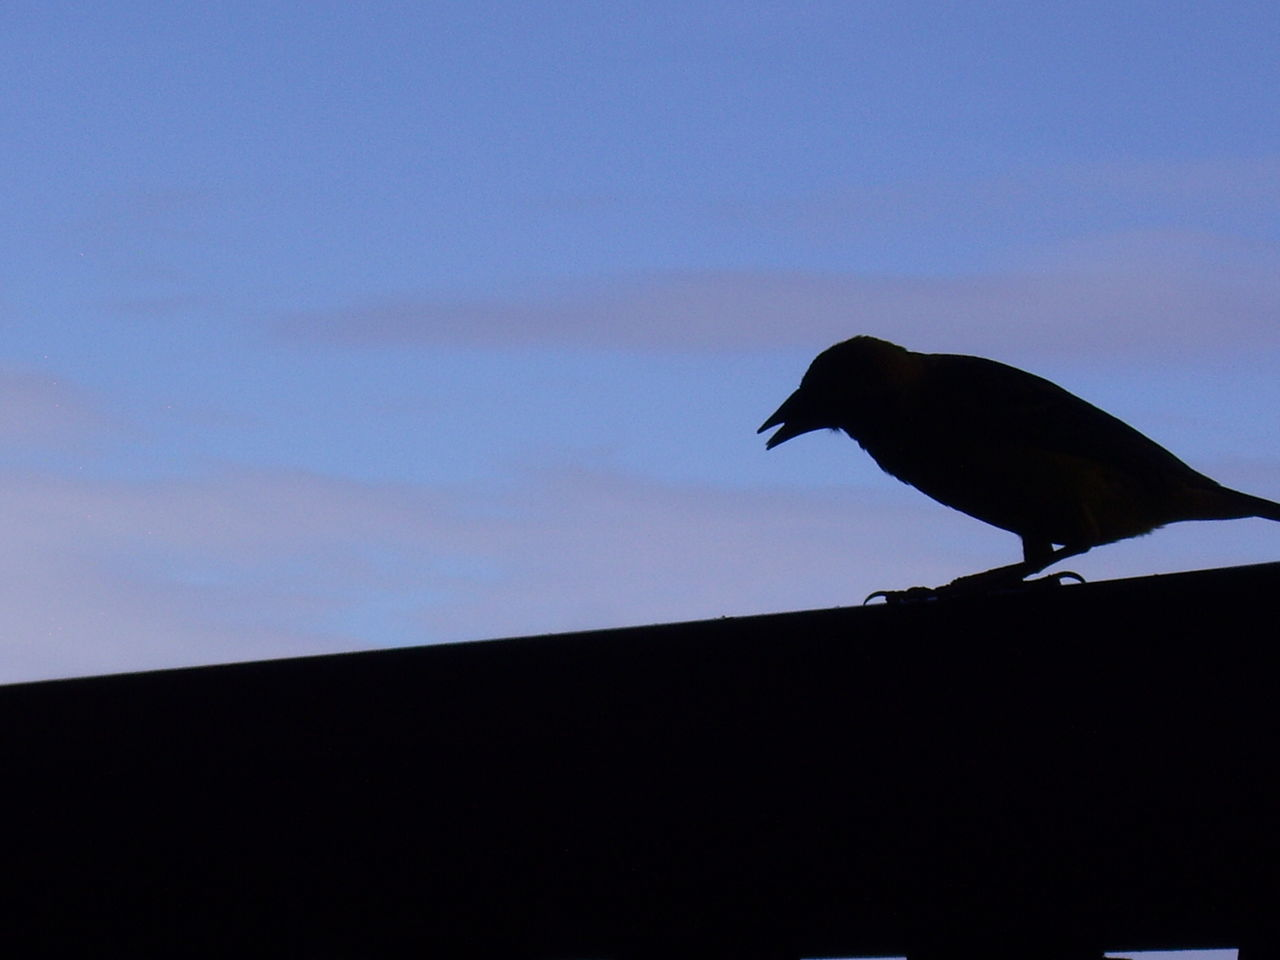 silhouette, animal themes, bird, animals in the wild, one animal, low angle view, no people, crow, copy space, animal wildlife, raven - bird, outdoors, nature, perching, sunset, sky, day, close-up